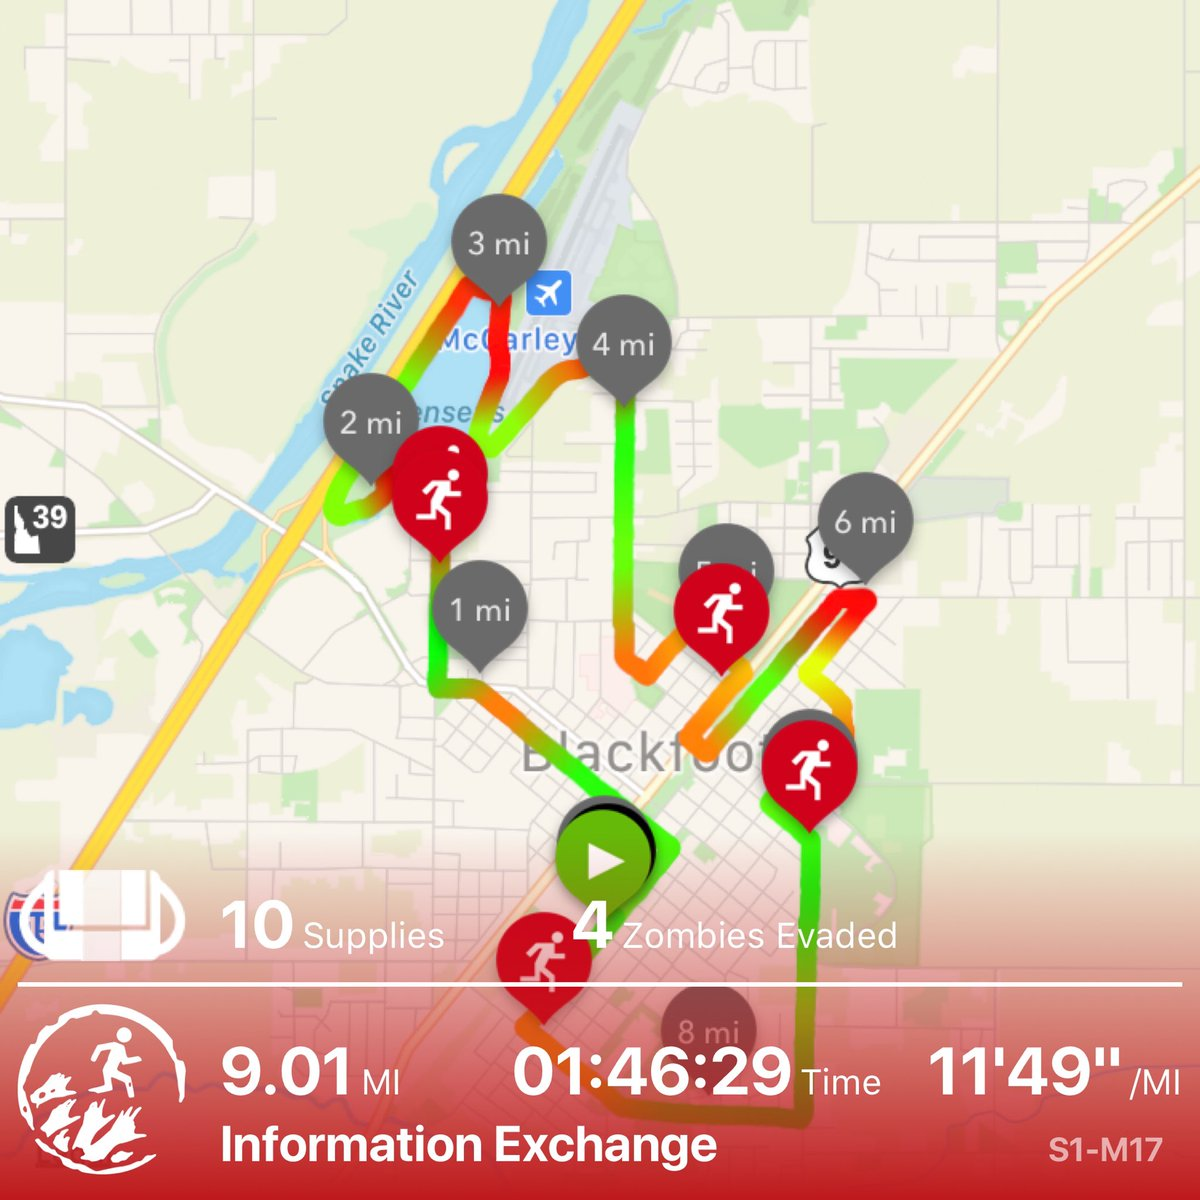 I didn't care about the pace today. I rucked six miles yesterday with a 35 lb pack and I have a PT test on Wednesday so I wasn't trying to push the pace, also this is the farthest I've run in years.   Helped Runner 10 -renowned zombie-killer - on secret cargo mission #zombiesrun pic.twitter.com/EJFKy6AuhM